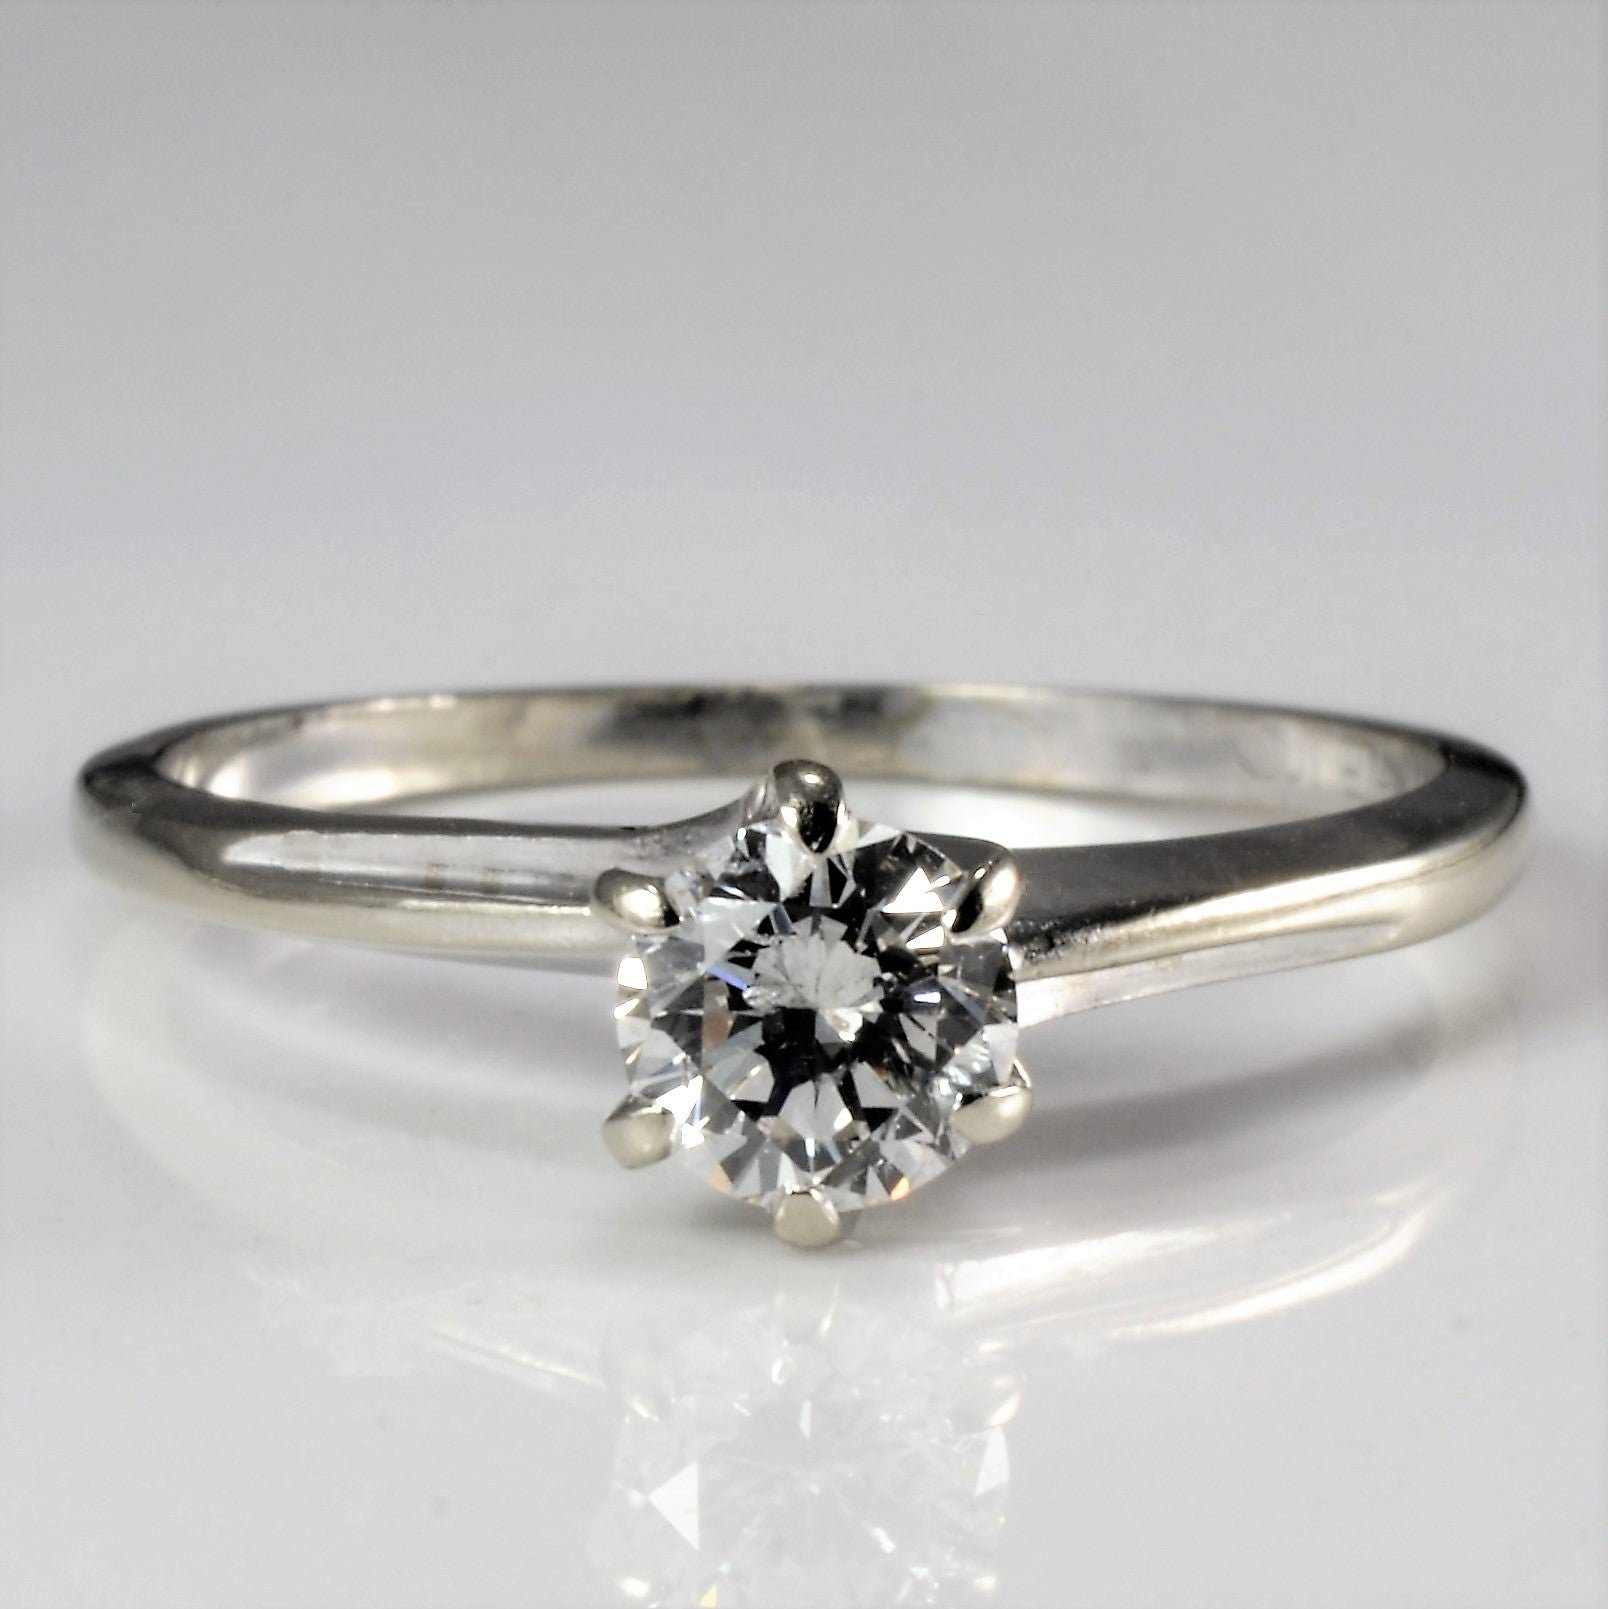 Six Prong Solitaire Diamond Engagement Ring | 0.39 ct, SZ 6.5 |